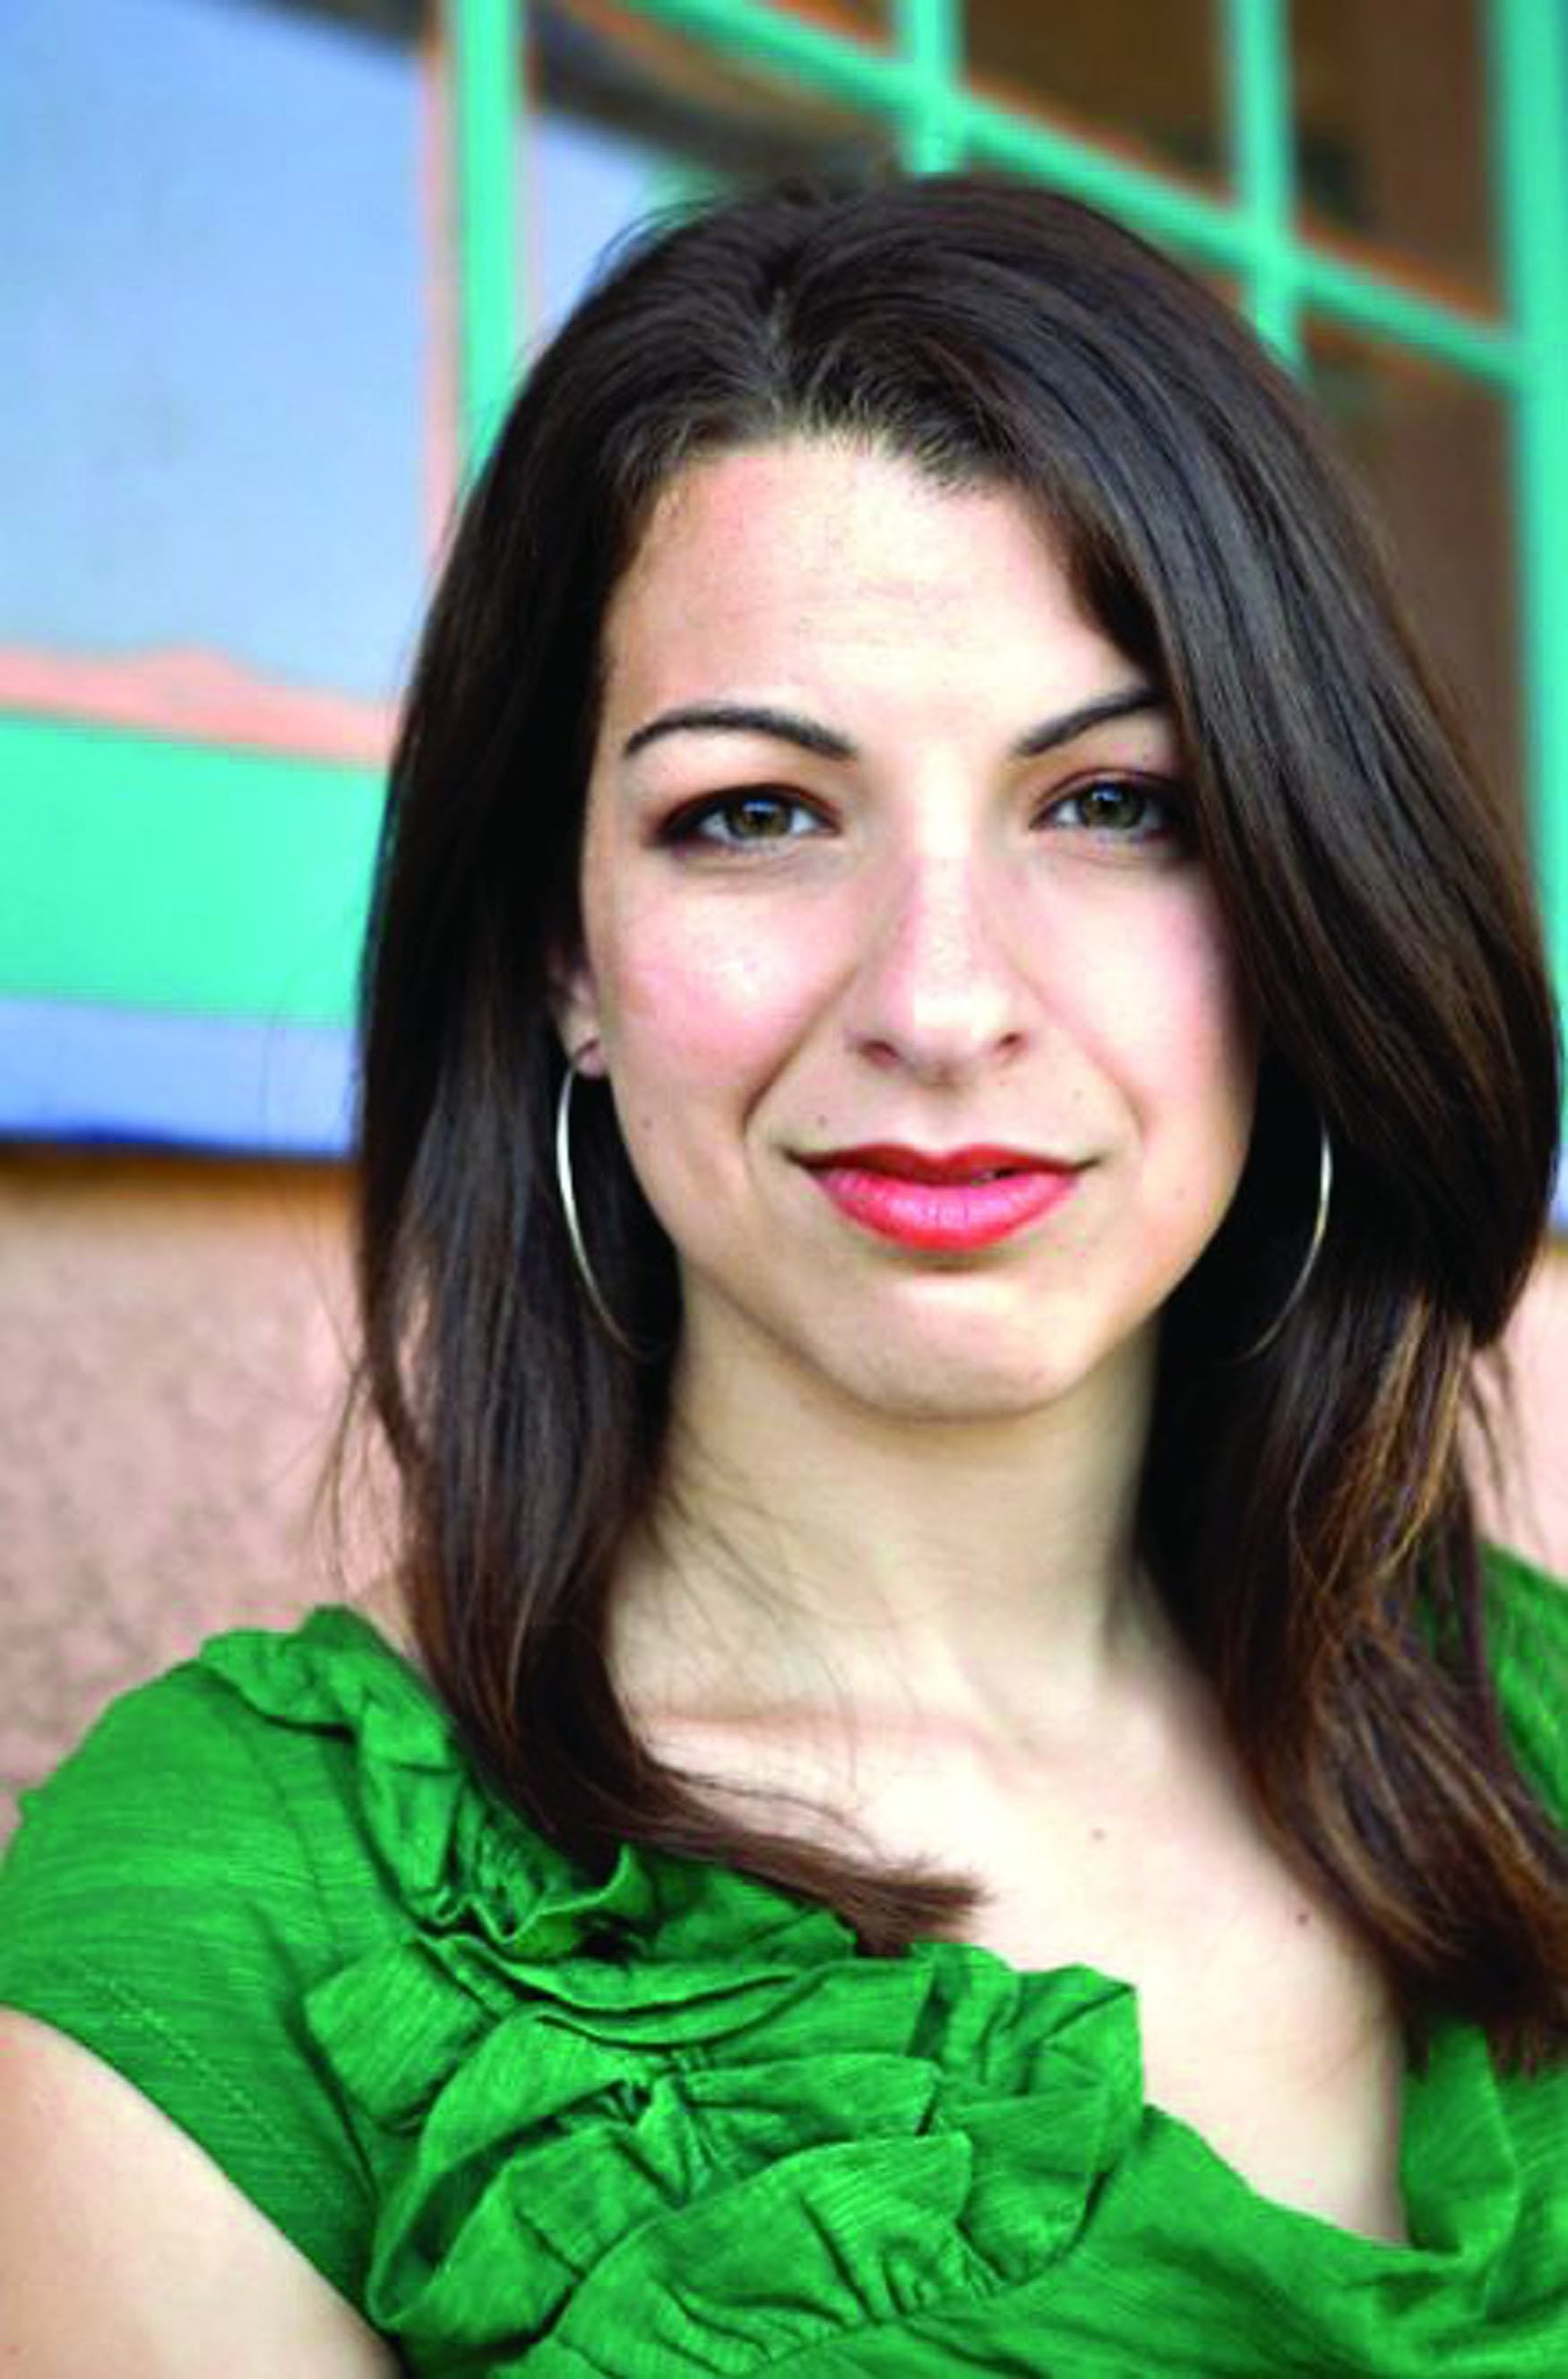 Feminist video game blogger Anita Sarkeesian will bring a new perspective on misogyny in video game culture when she speaks at the University next month.